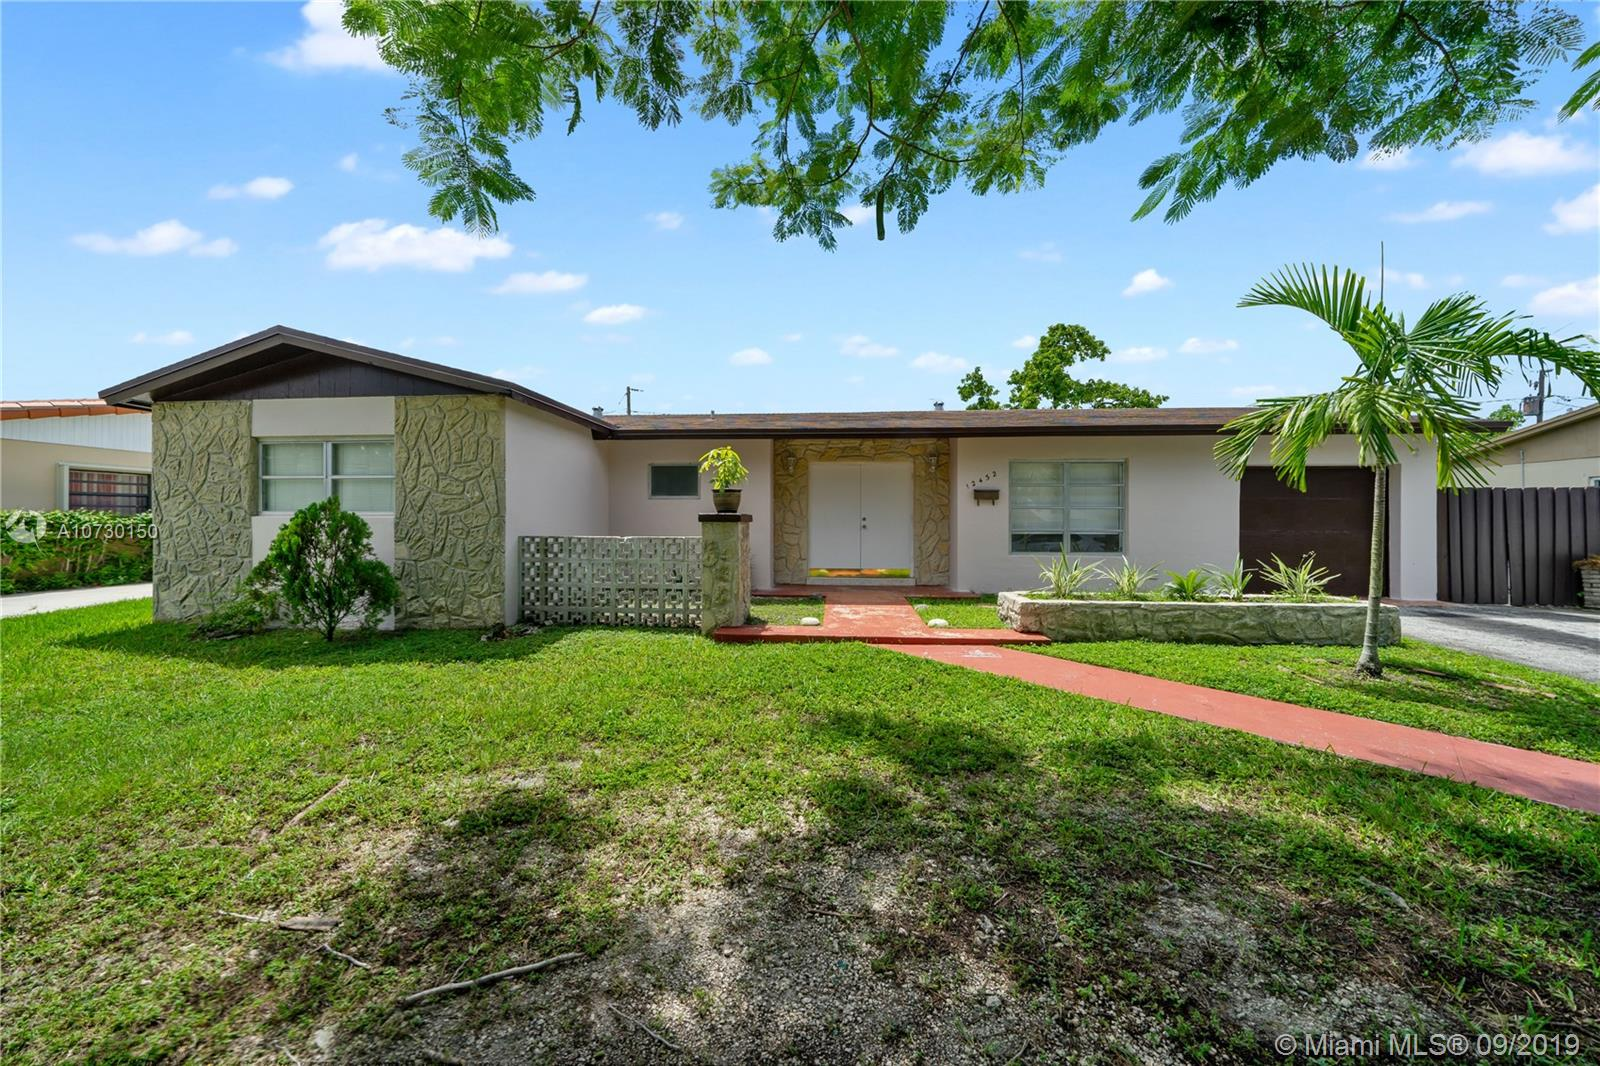 12432 SW 26th St, Kendall in Miami-dade County County, FL 33175 Home for Sale